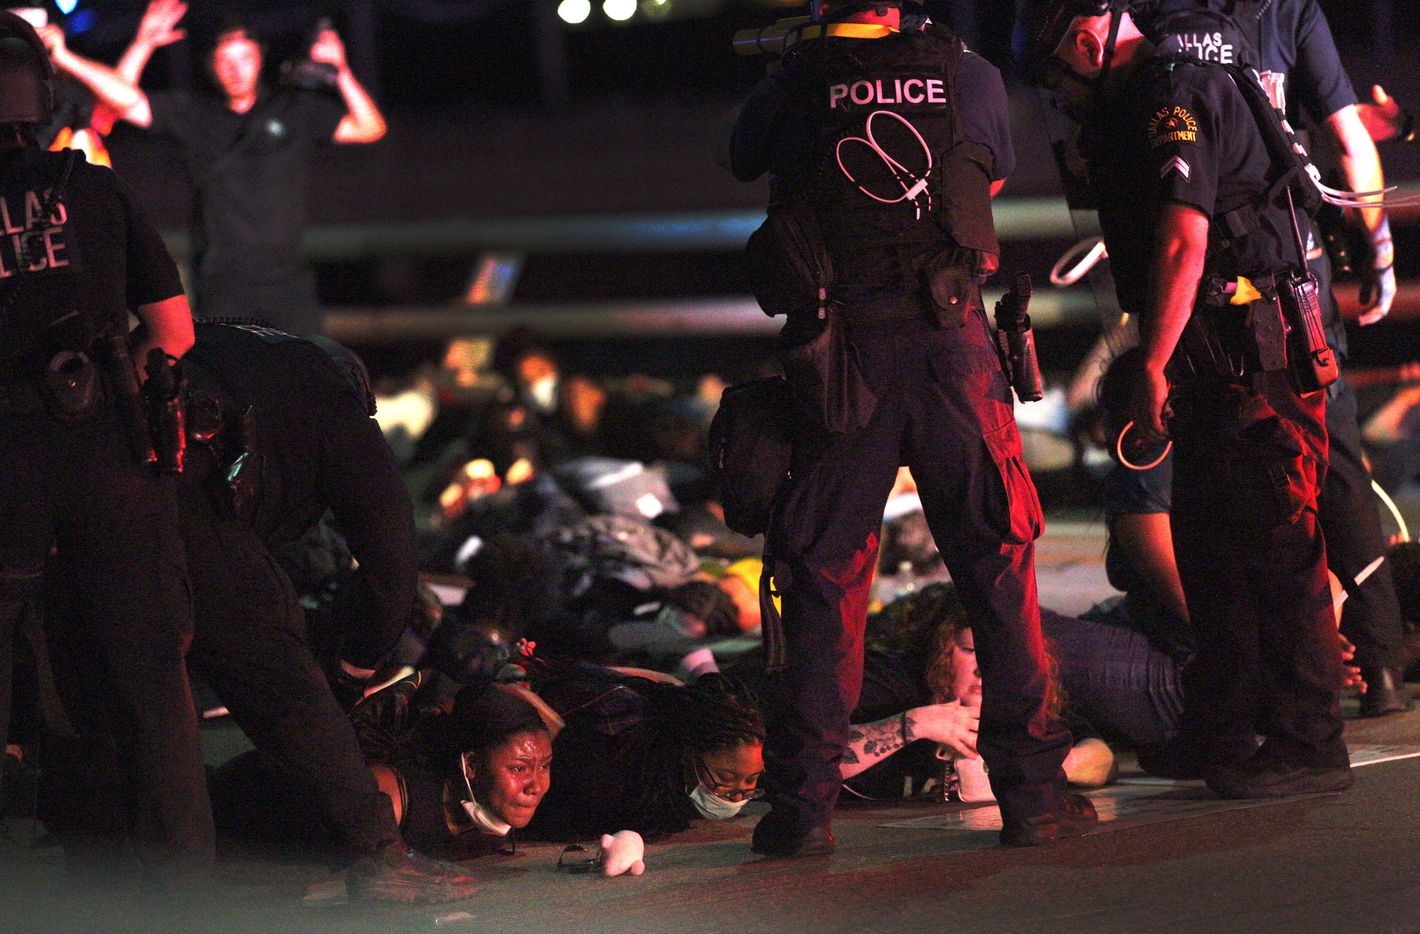 Police have protestors lie on the ground on the Margaret Hunt Hill bridge, while arresting them after curfew while they marched against police brutality on Monday, June 1, 2020, in Dallas.